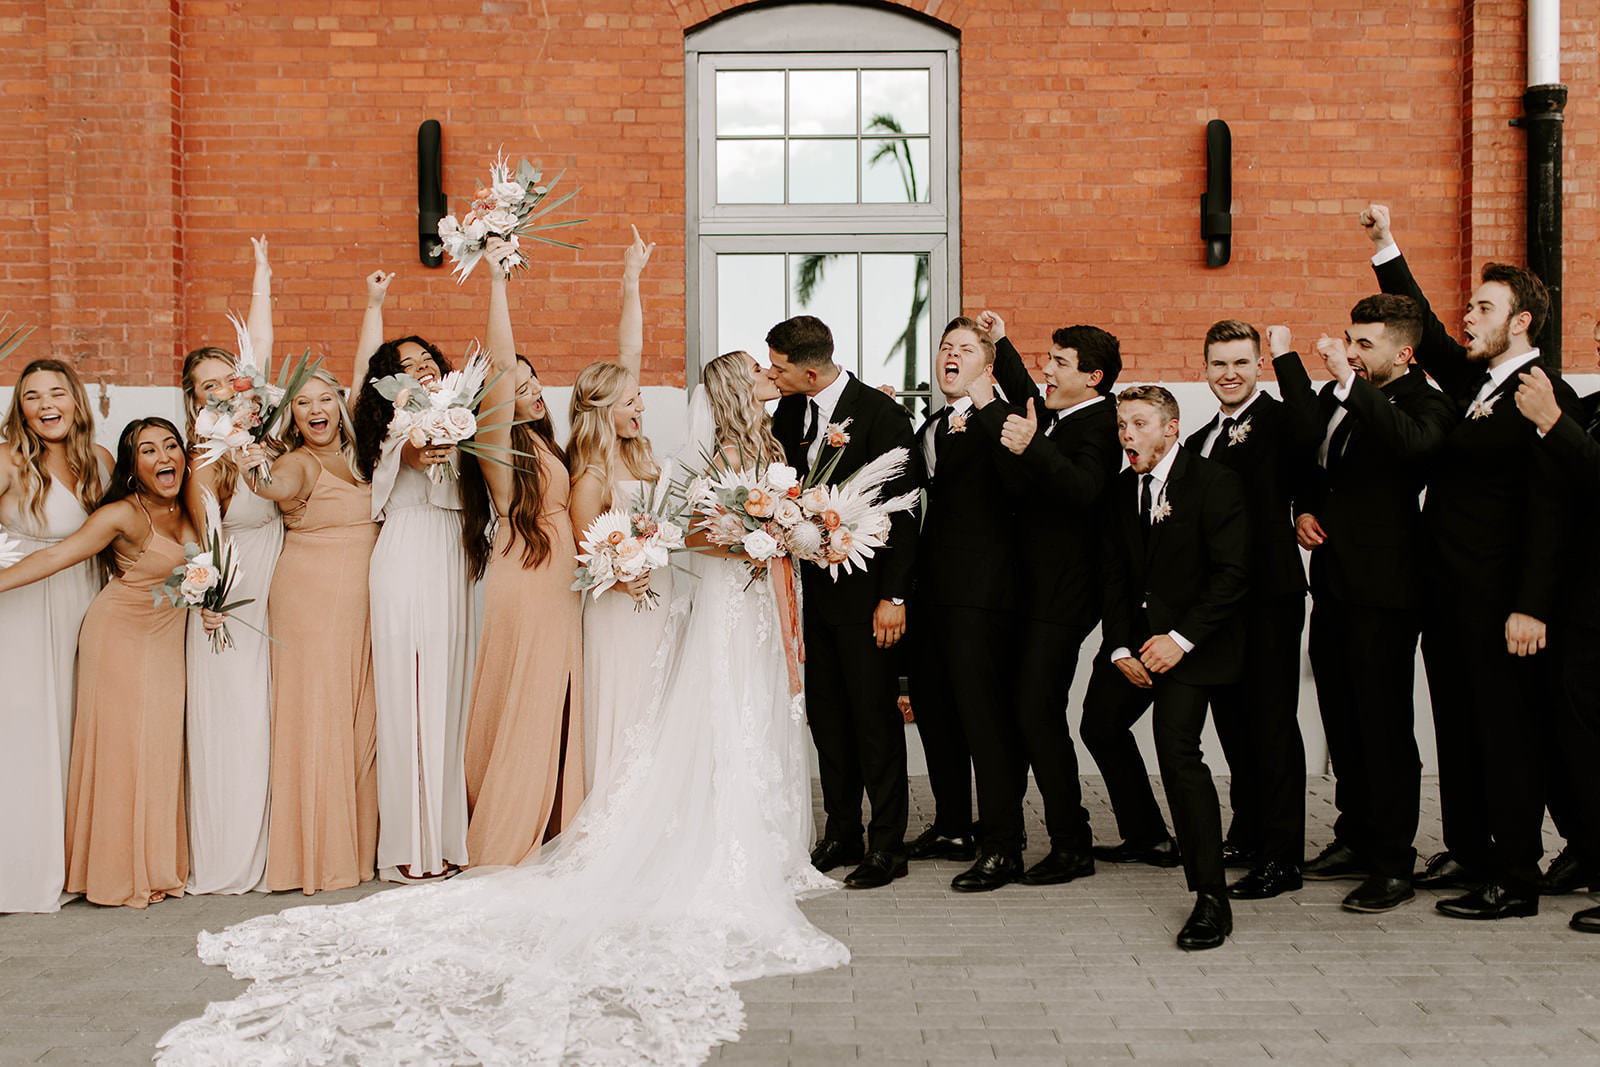 Boho Whimsical Excited Fun Cheering Wedding Party Portrait, Bridesmaids in Mix and Match Neutral, Sandy Blush Dresses with Palm Tree Leaves, Blush Pink Roses Floral Bouquets, Groomsmen in Black Suite, Bride in Lace and Tulle Martina Liana Wedding Dress with Cathedral Length Veil Outside Red Brick Building   Tampa Bay Wedding Planner Coastal Coordinating   Industrial Wedding Venue Armature Works